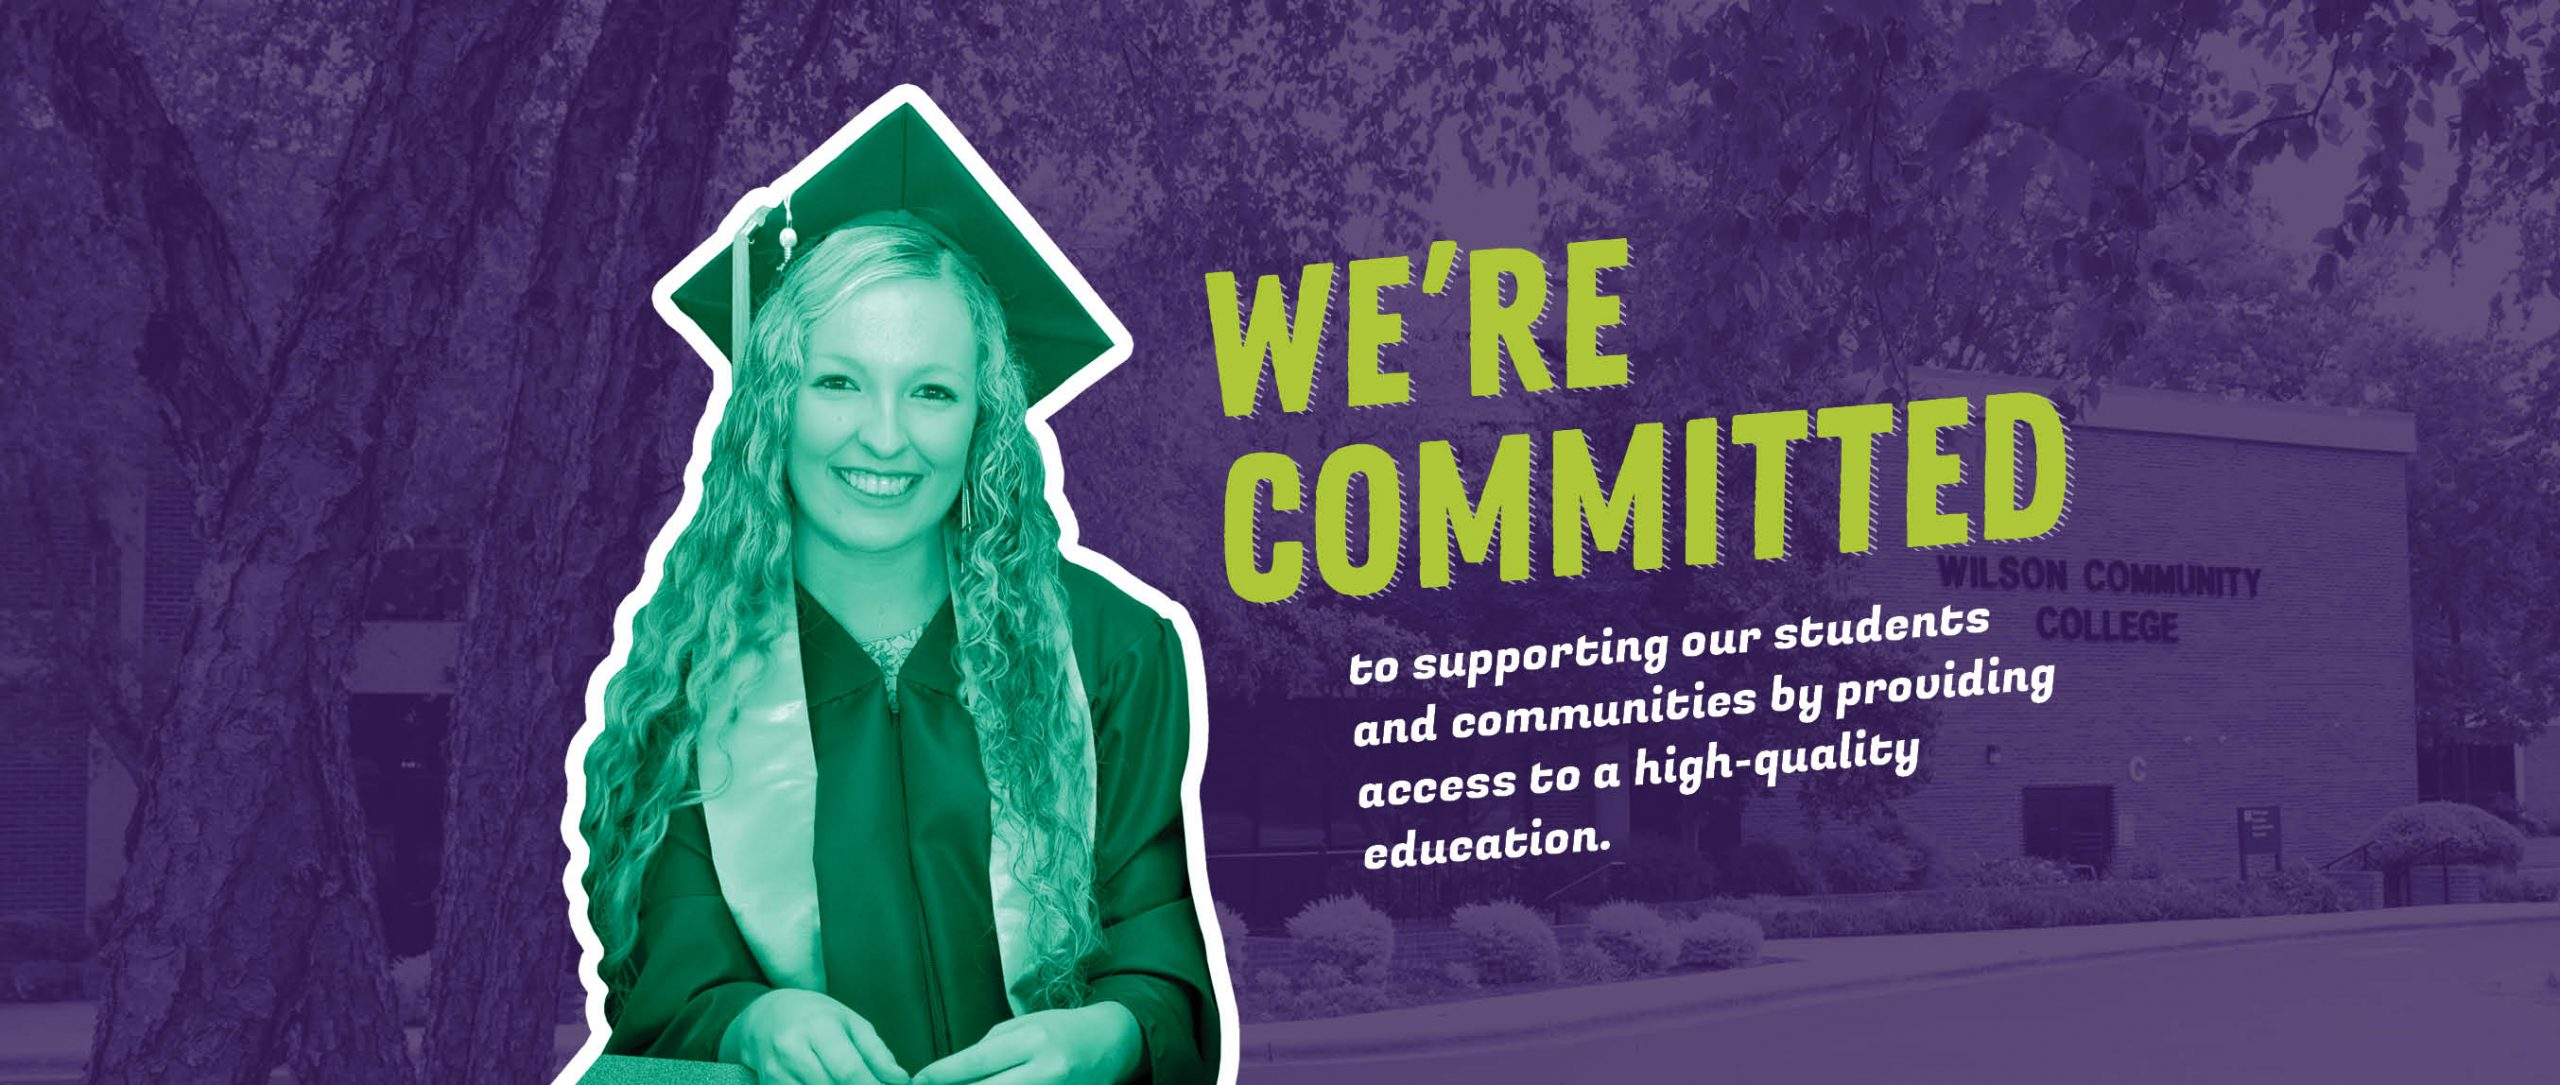 We're committed to supporting our students and communities by providing access to a high-quality education.